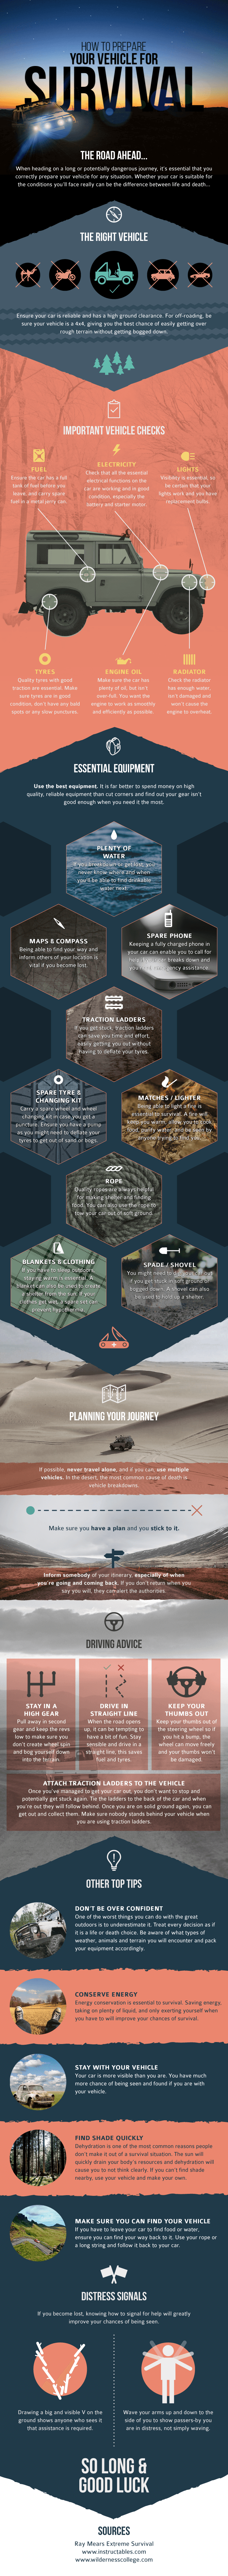 Survival infographic